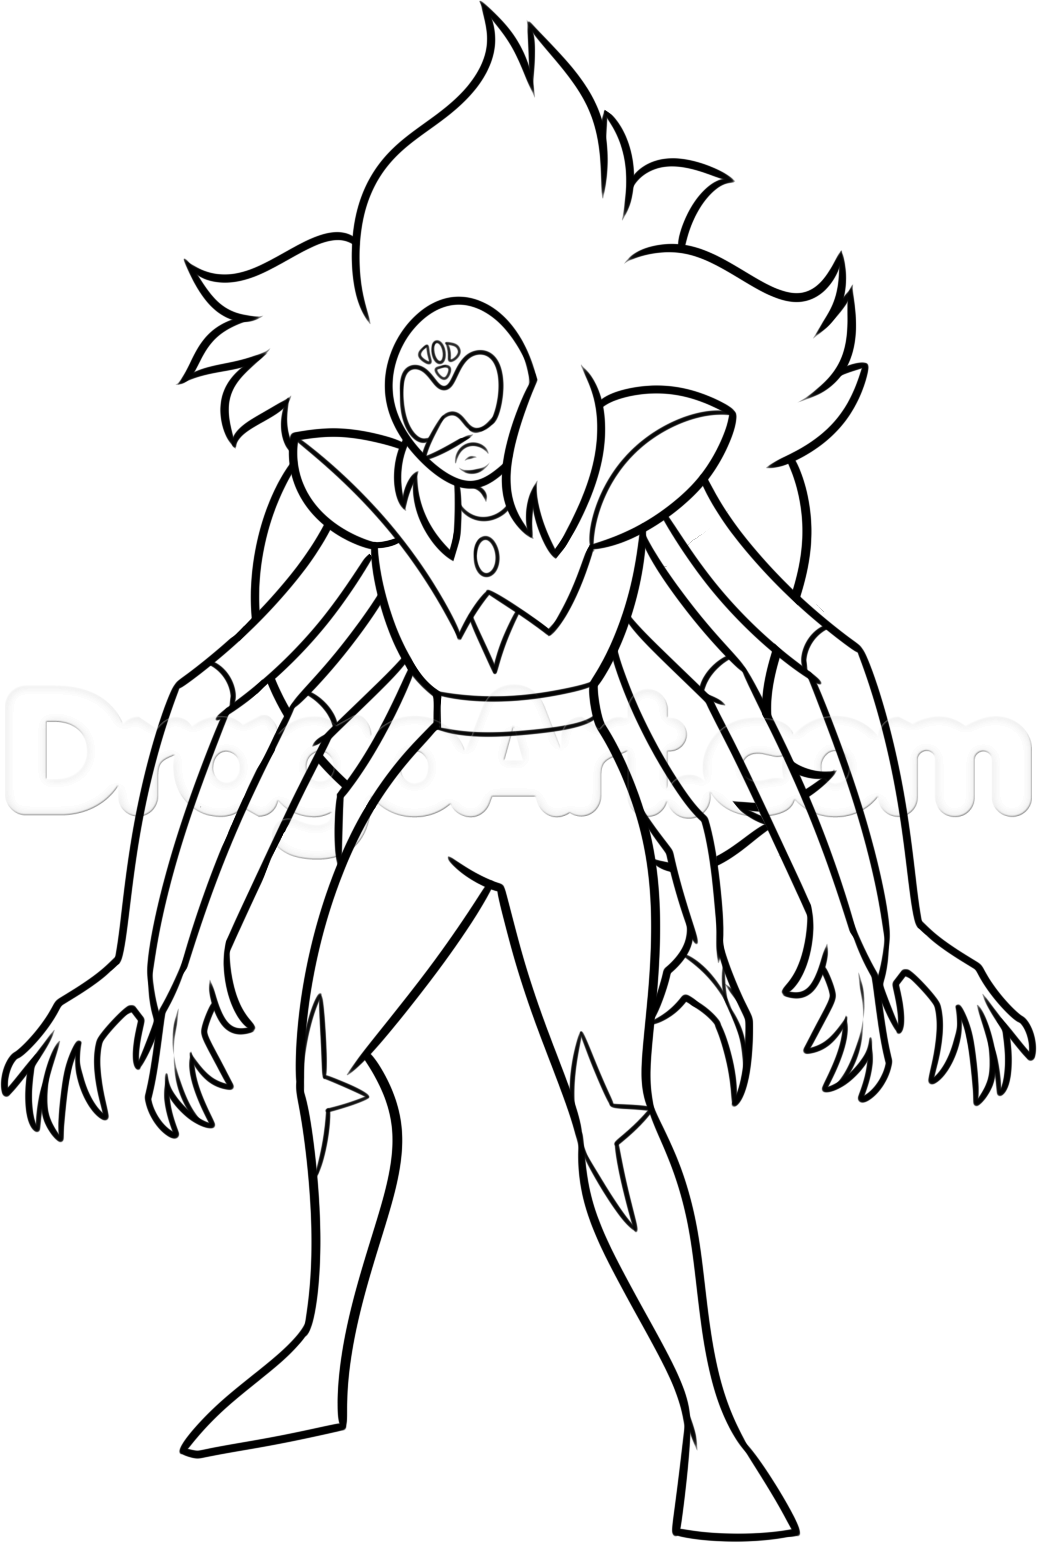 Coloring online universe - Alexandrite Steven Universe Character Coloring Pages